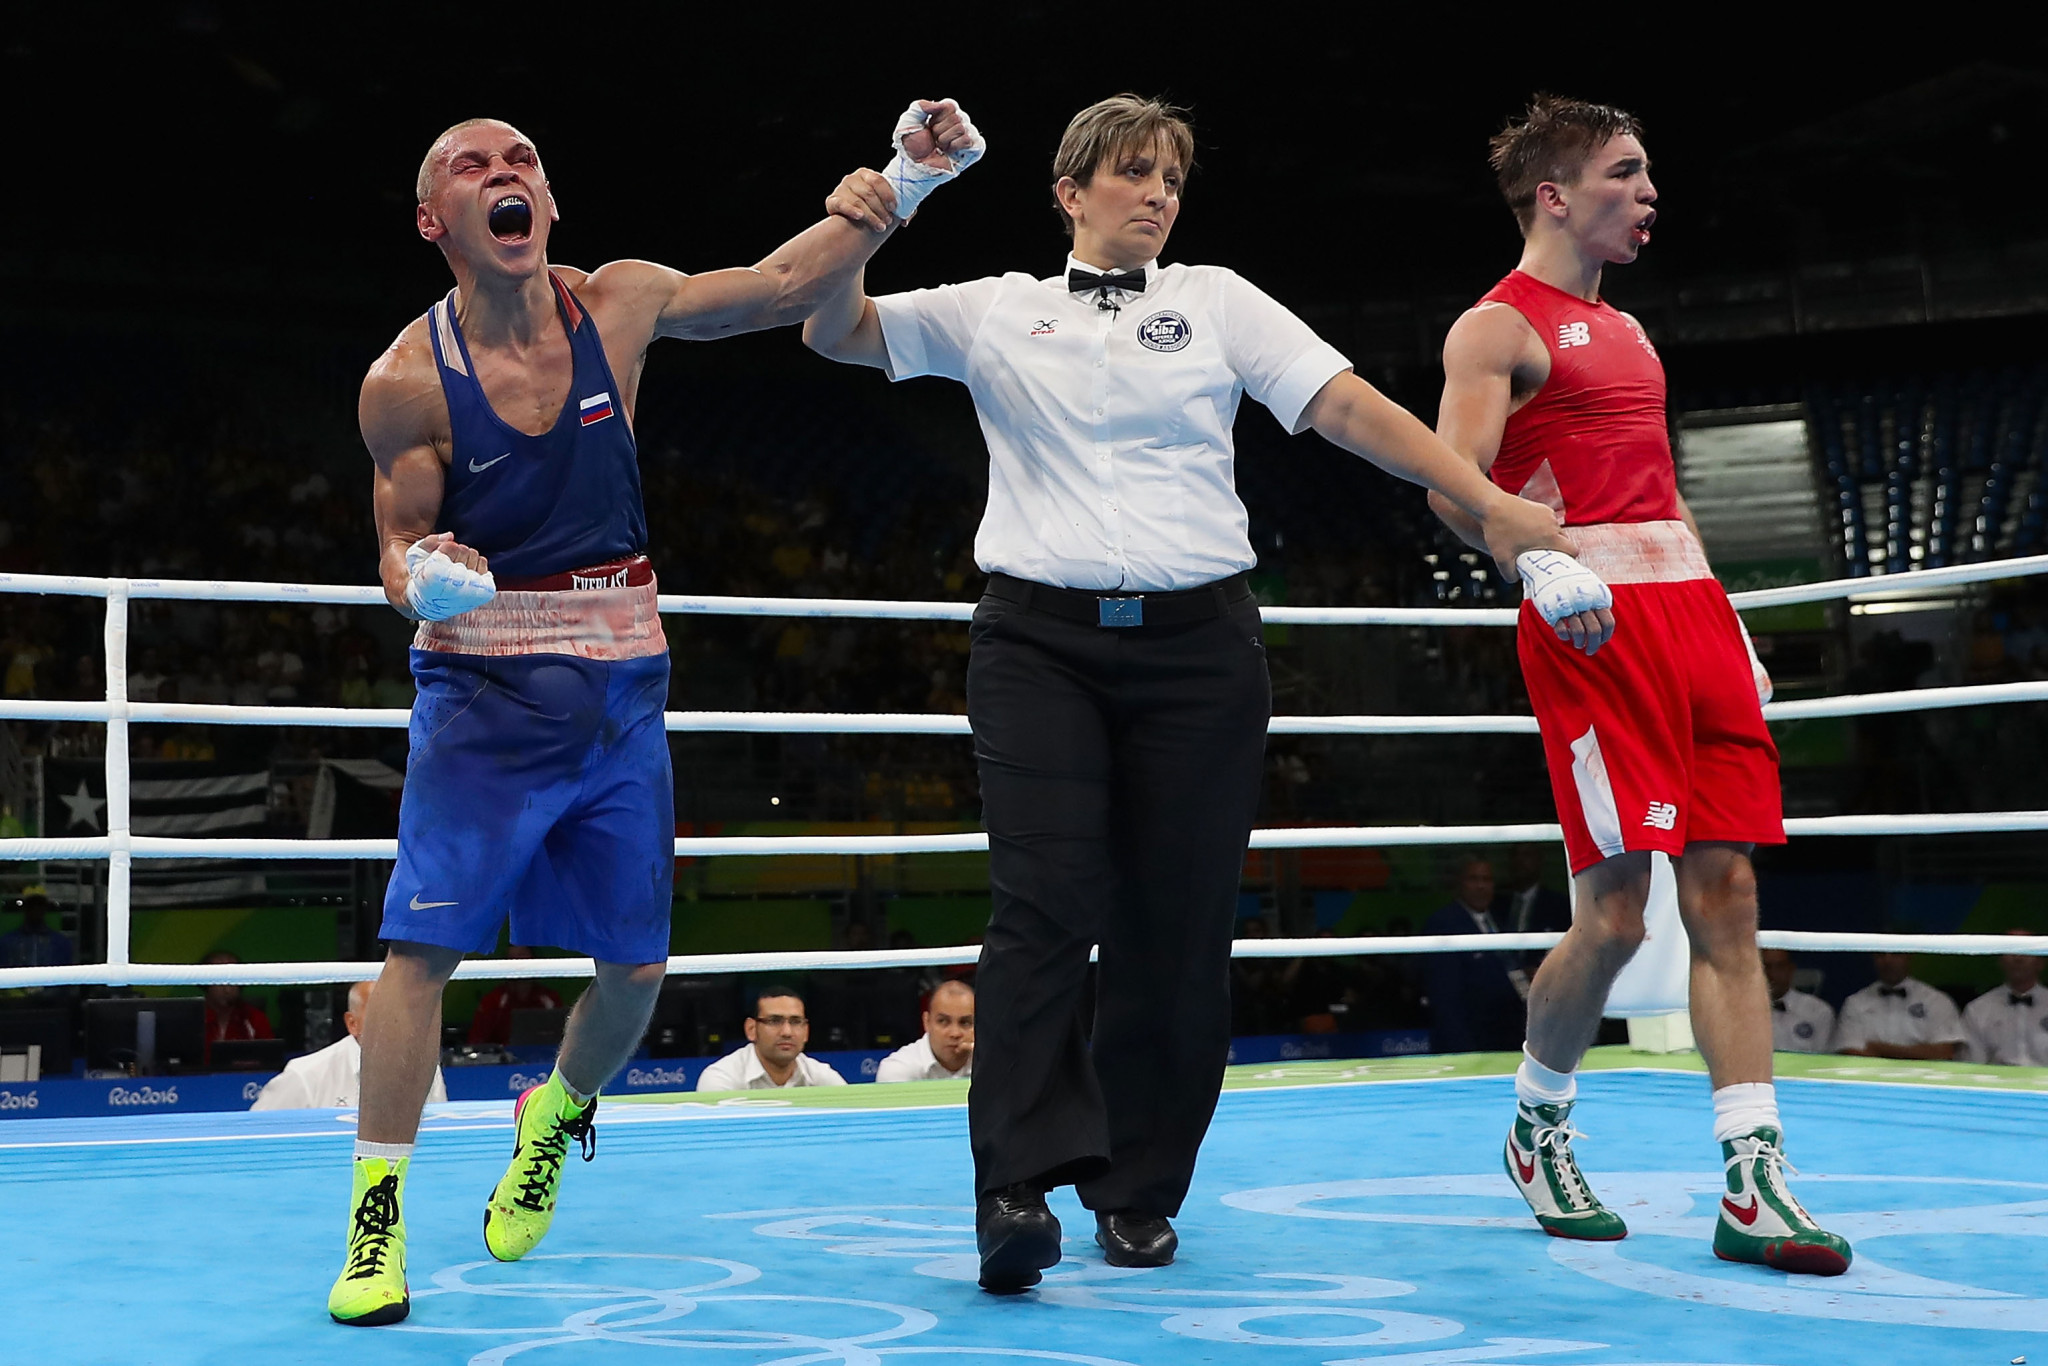 Ireland's Michael Conlan, right, was among those to controversially lose his bout at Rio 2016 ©Getty Images